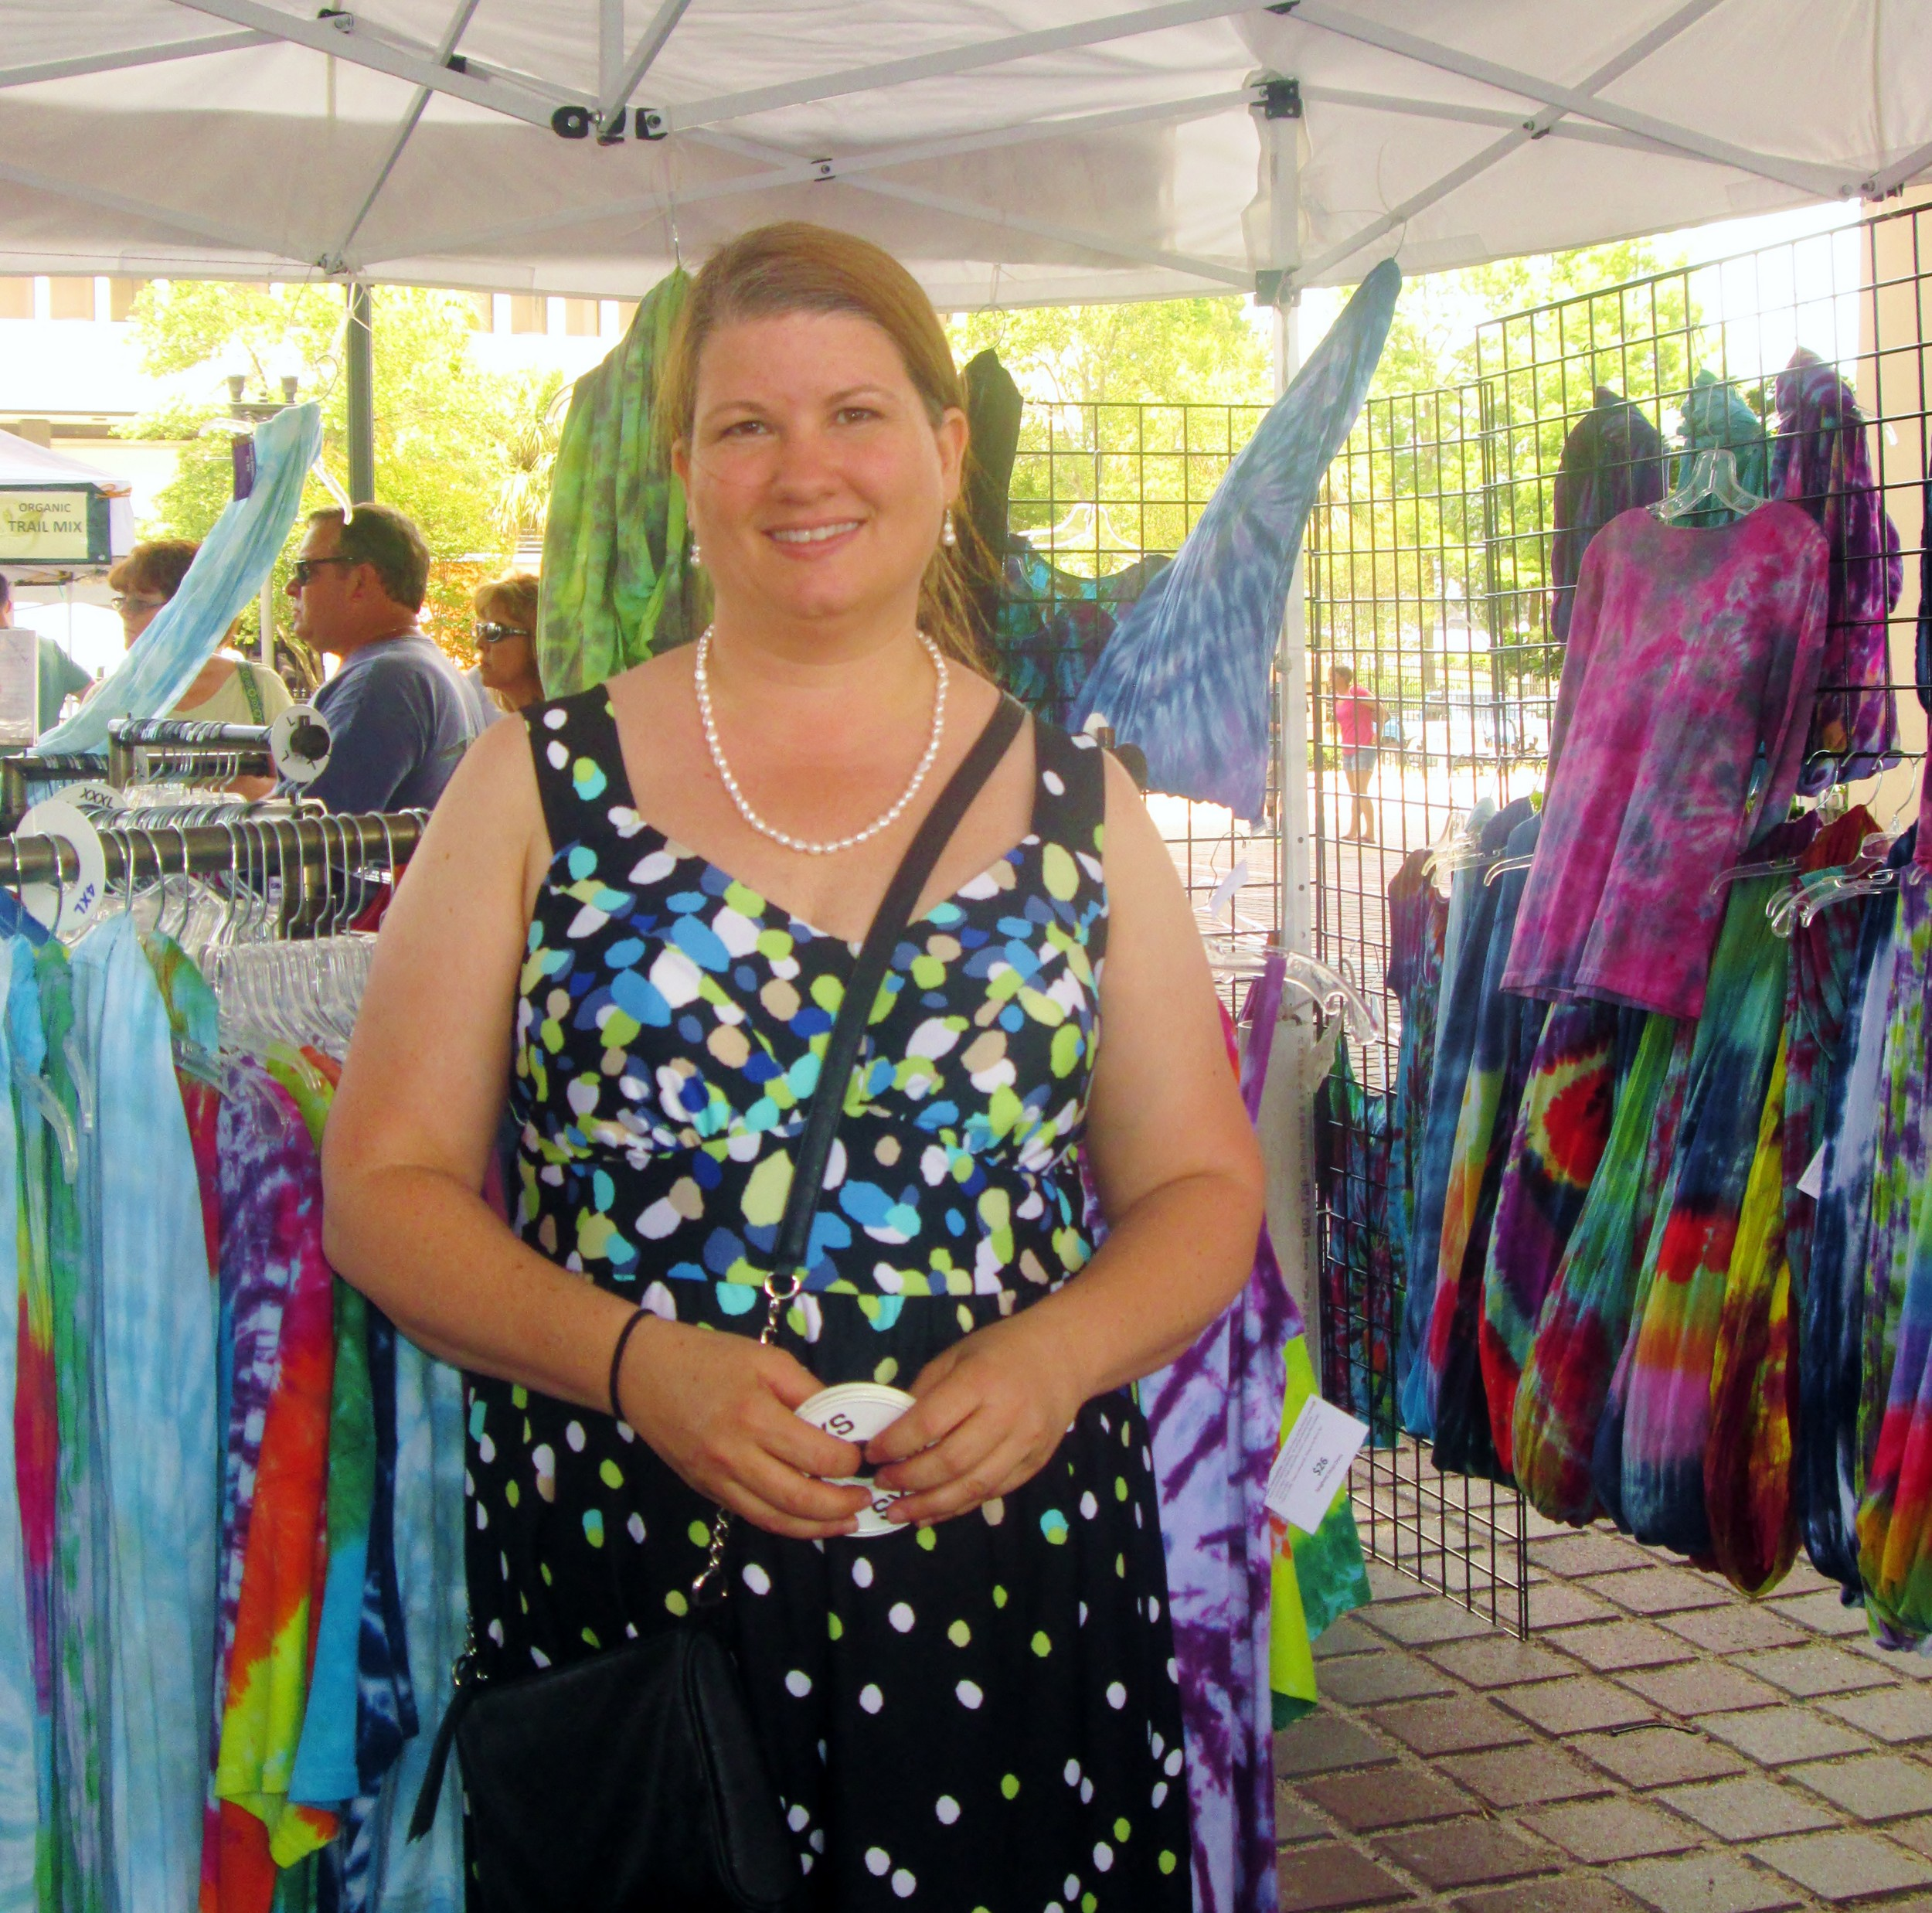 Kerri Halligan sells her tie-dyed clothing and accessories.